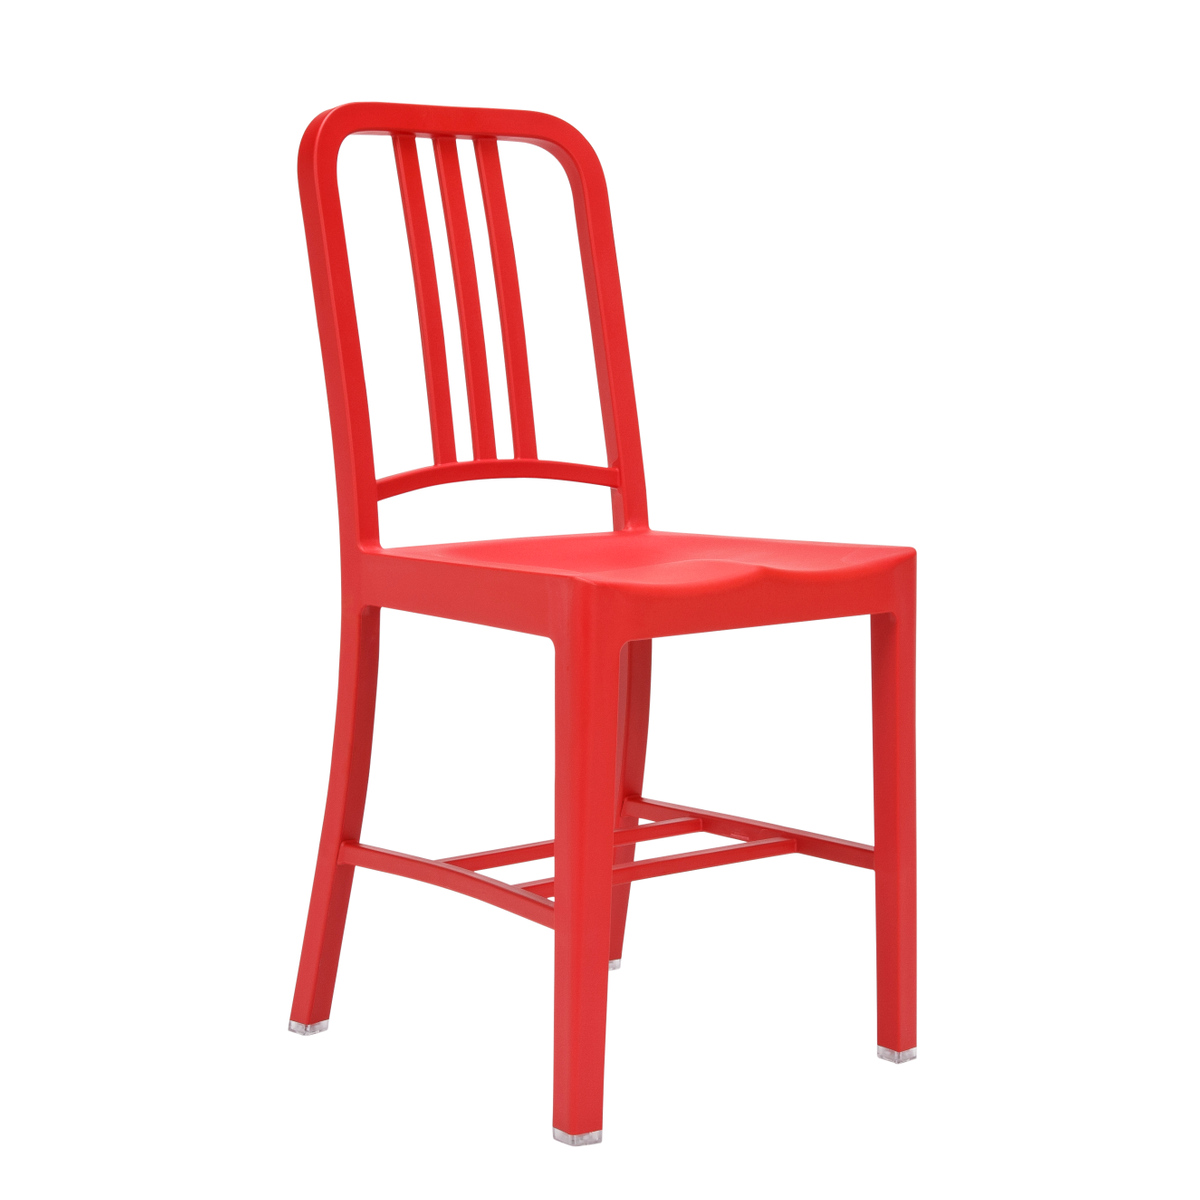 navy chair stool christmas covers for chairs 111